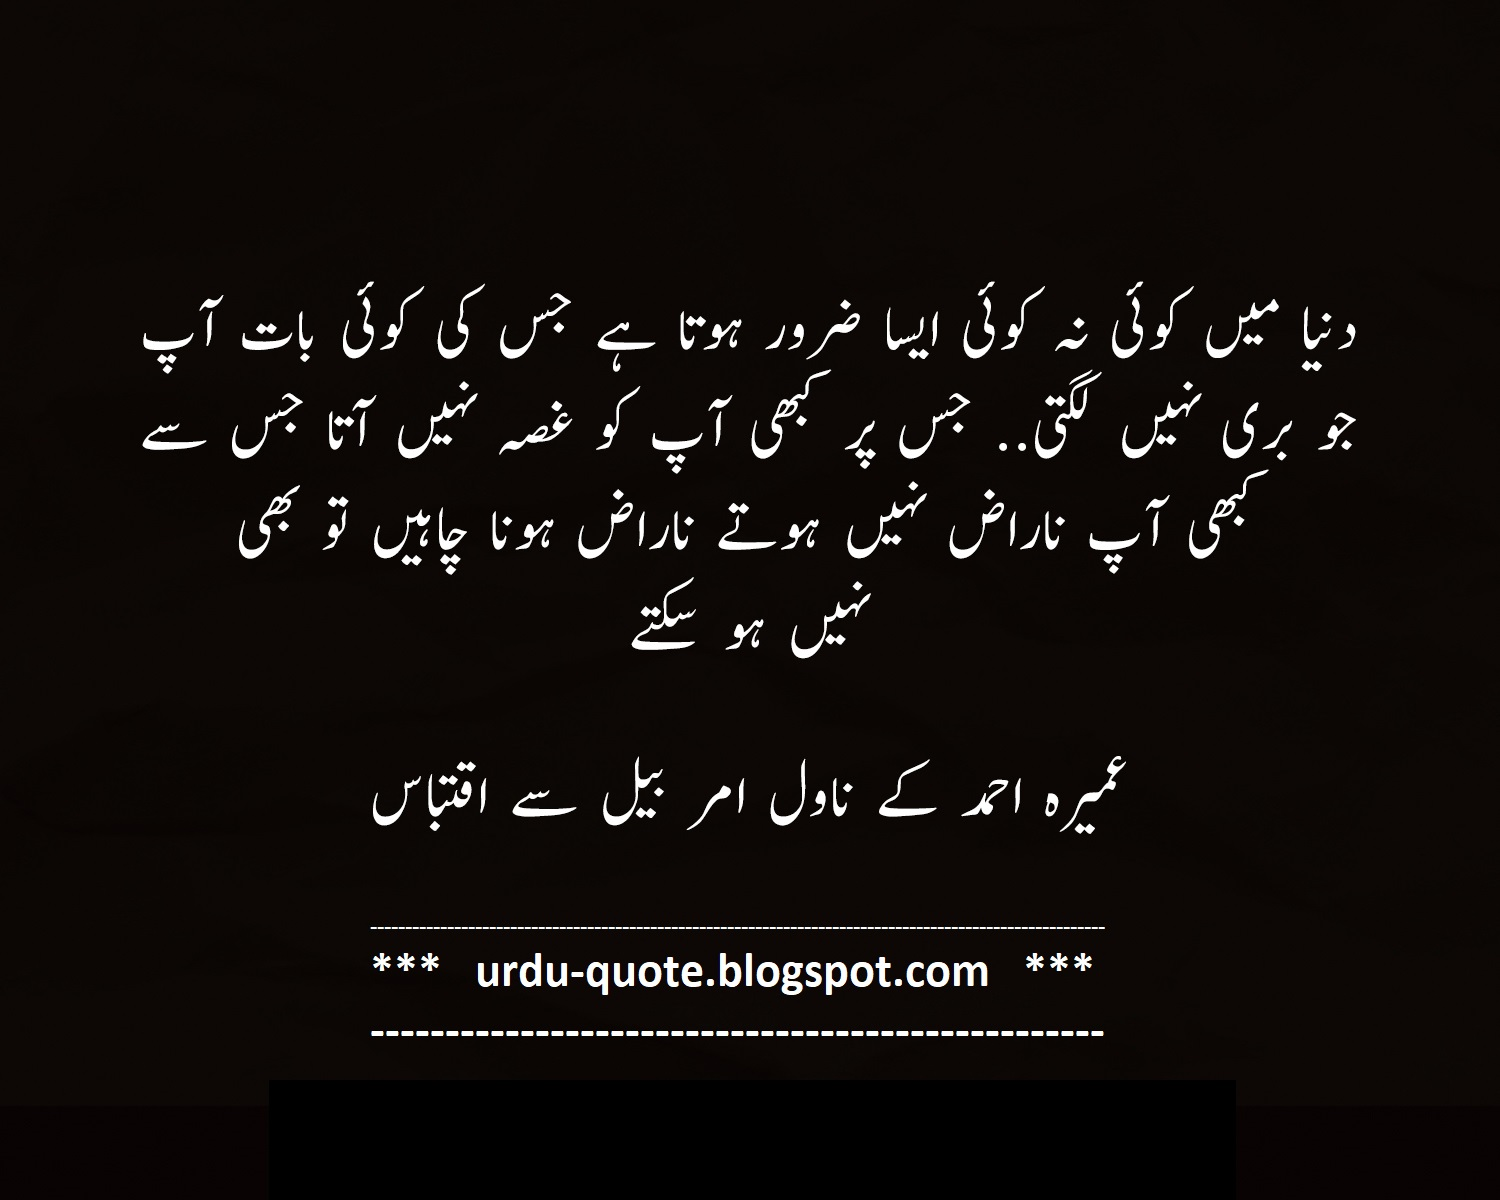 Urdu Quotes Best Urdu Quotes Famous Urdu Quotes Best Urdu